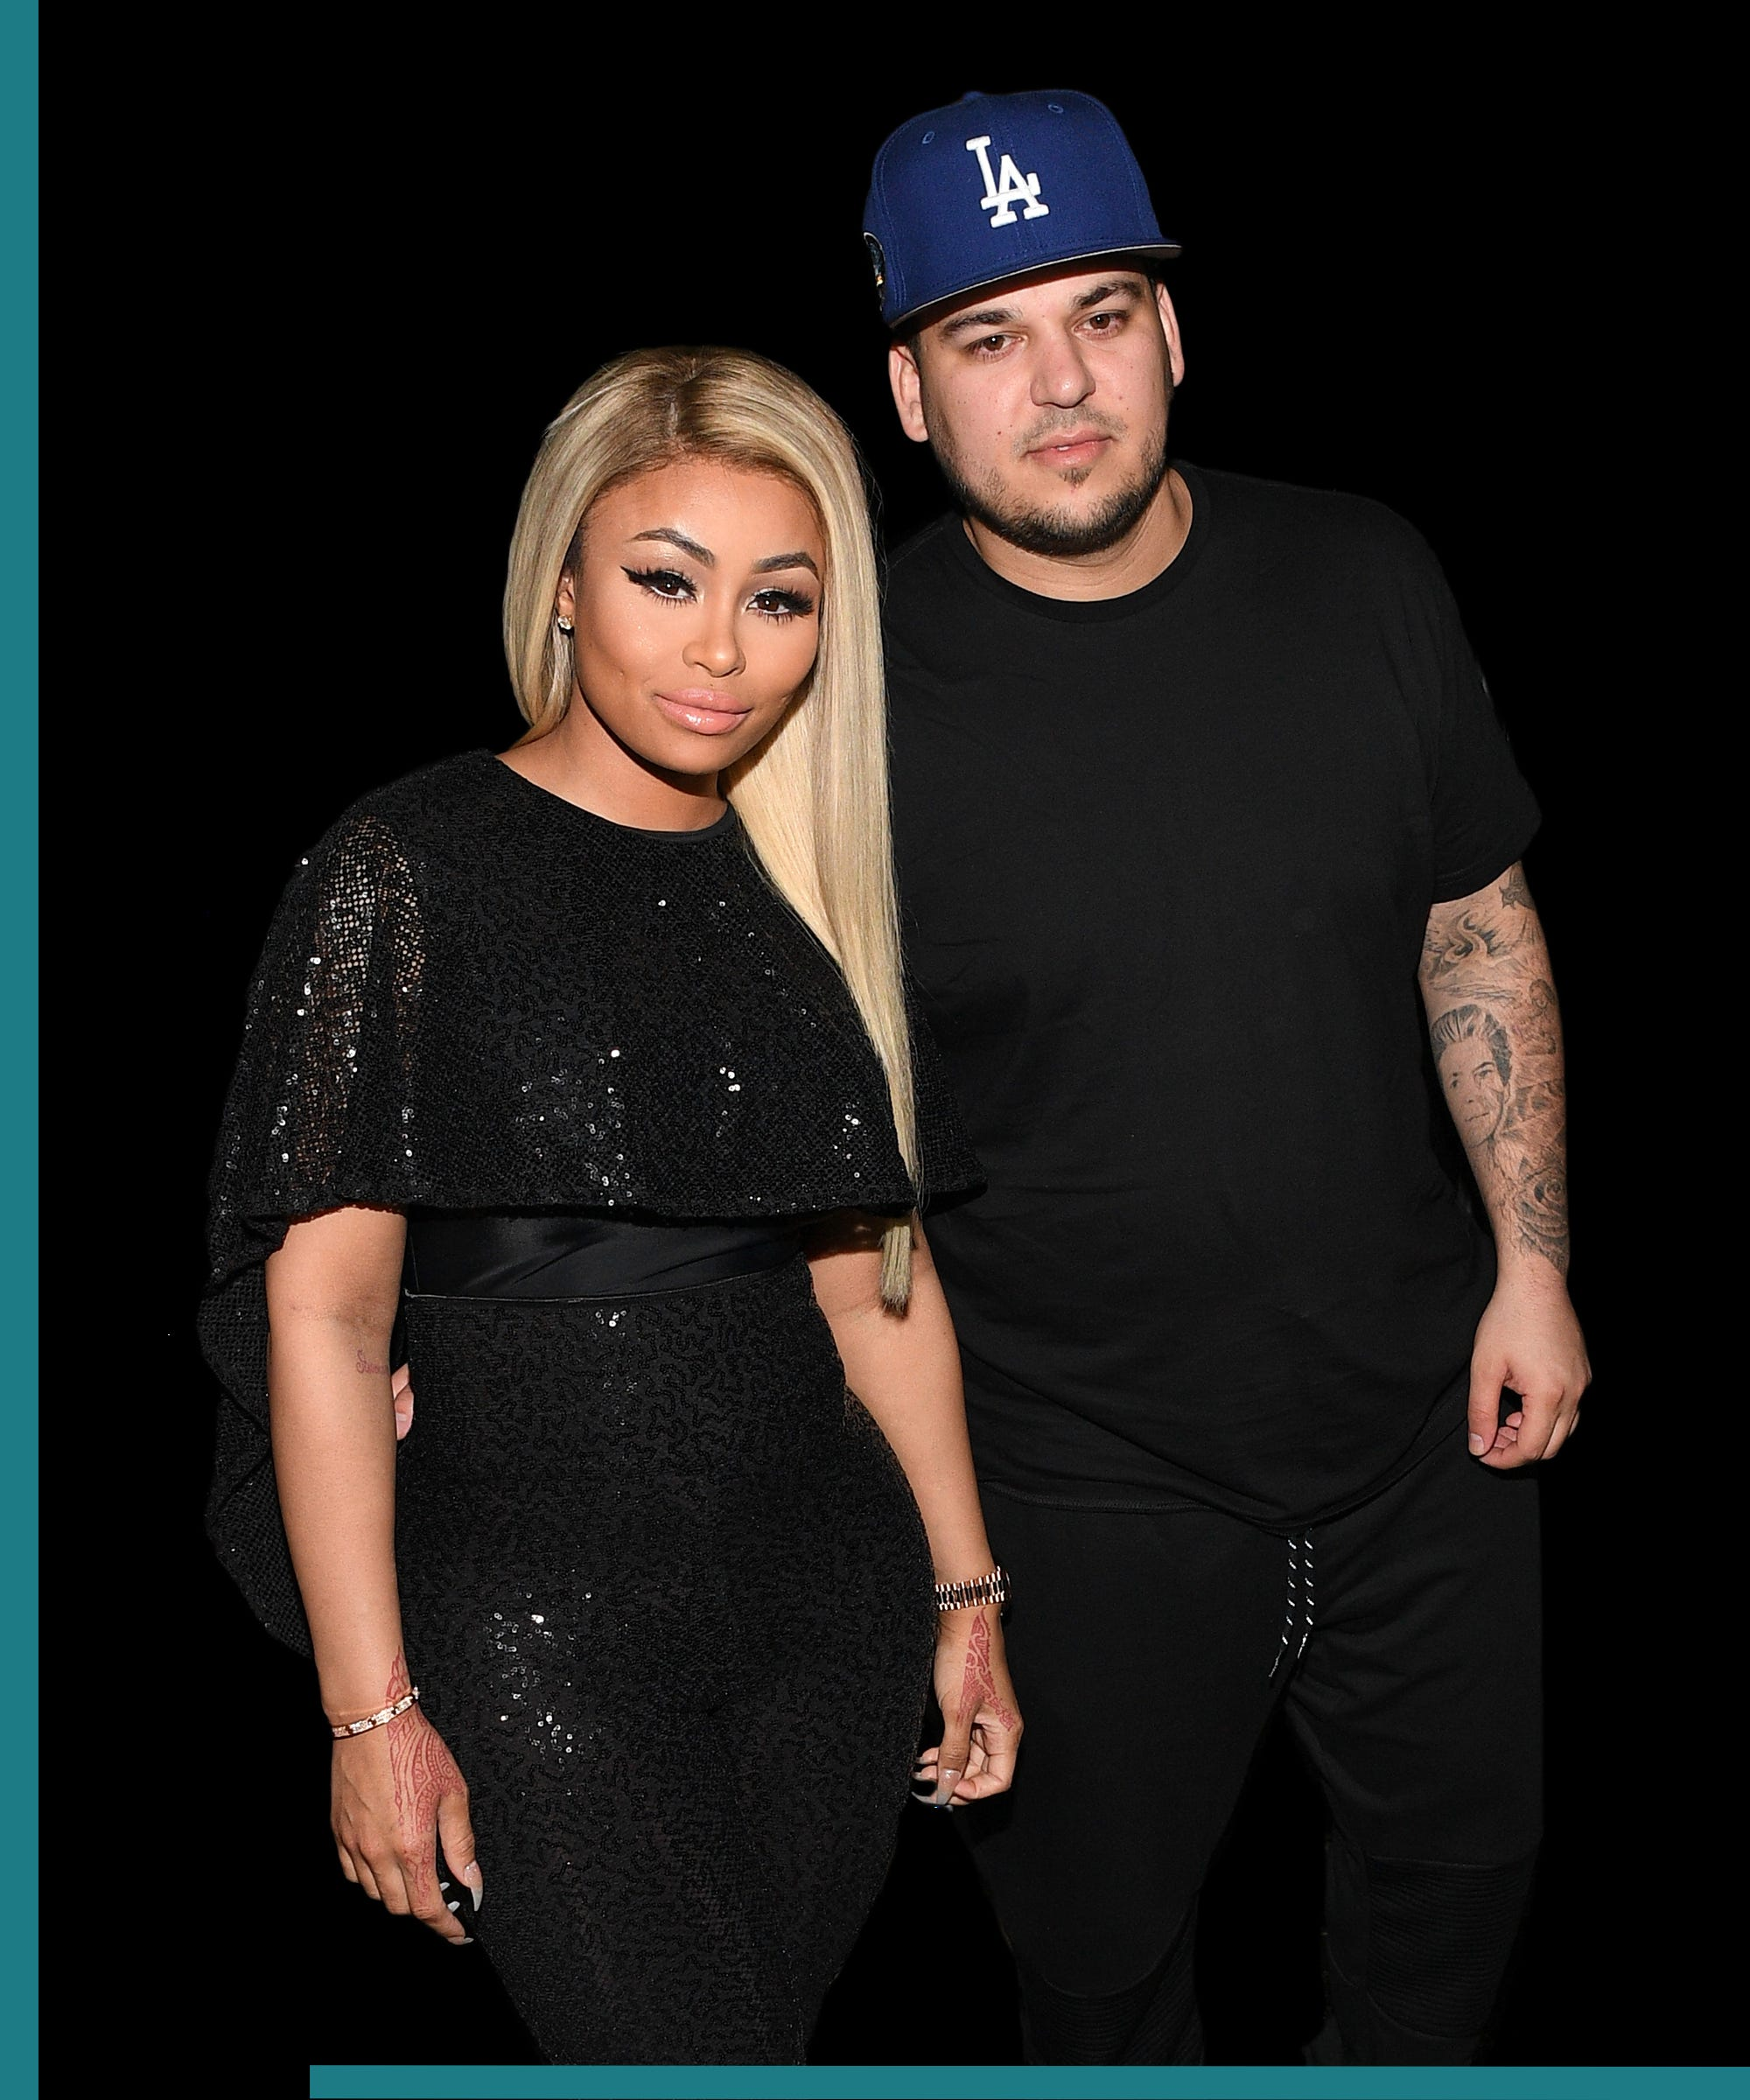 Rob Kardashian & Blac Chyna Clash Over Their Daughter Appearing On TV